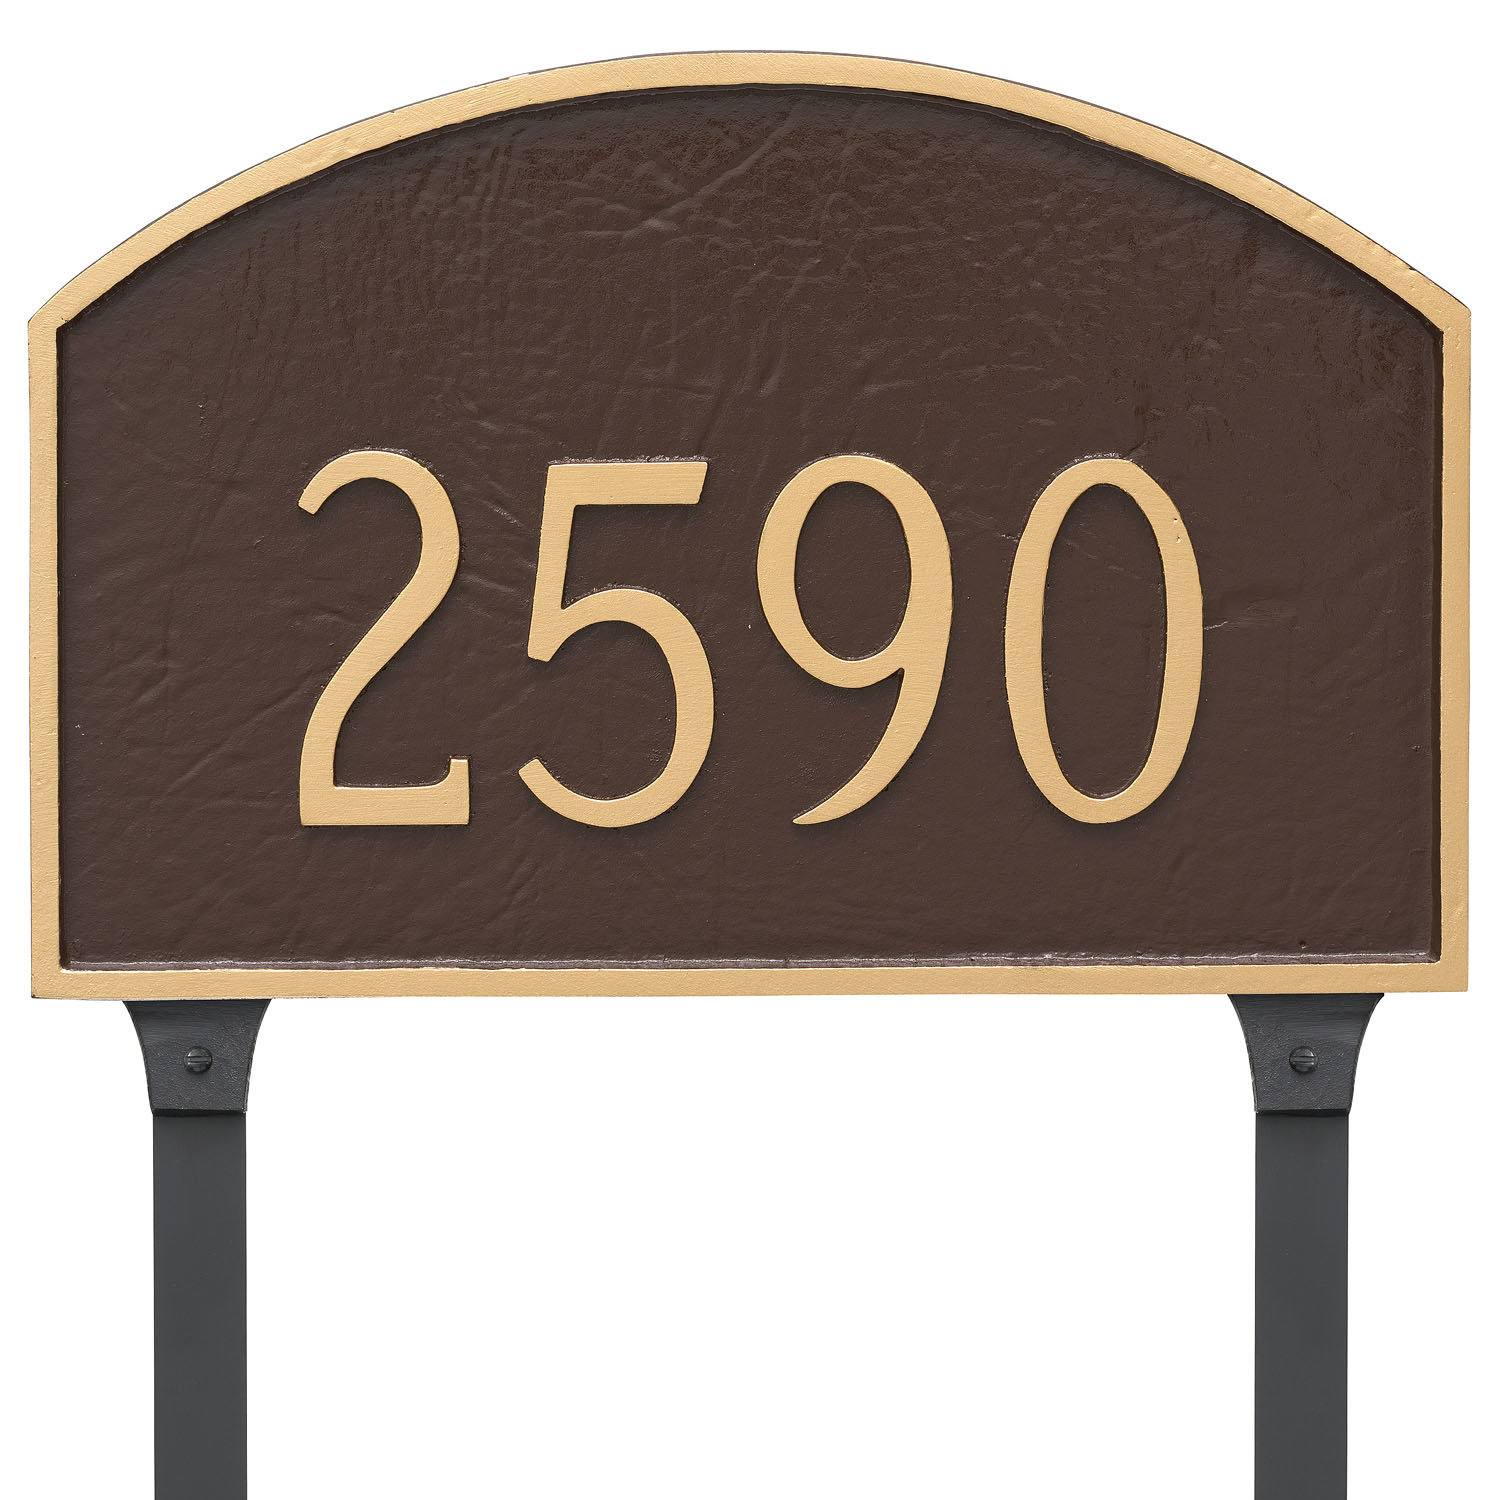 Prestige Arch Address Plaque - Large